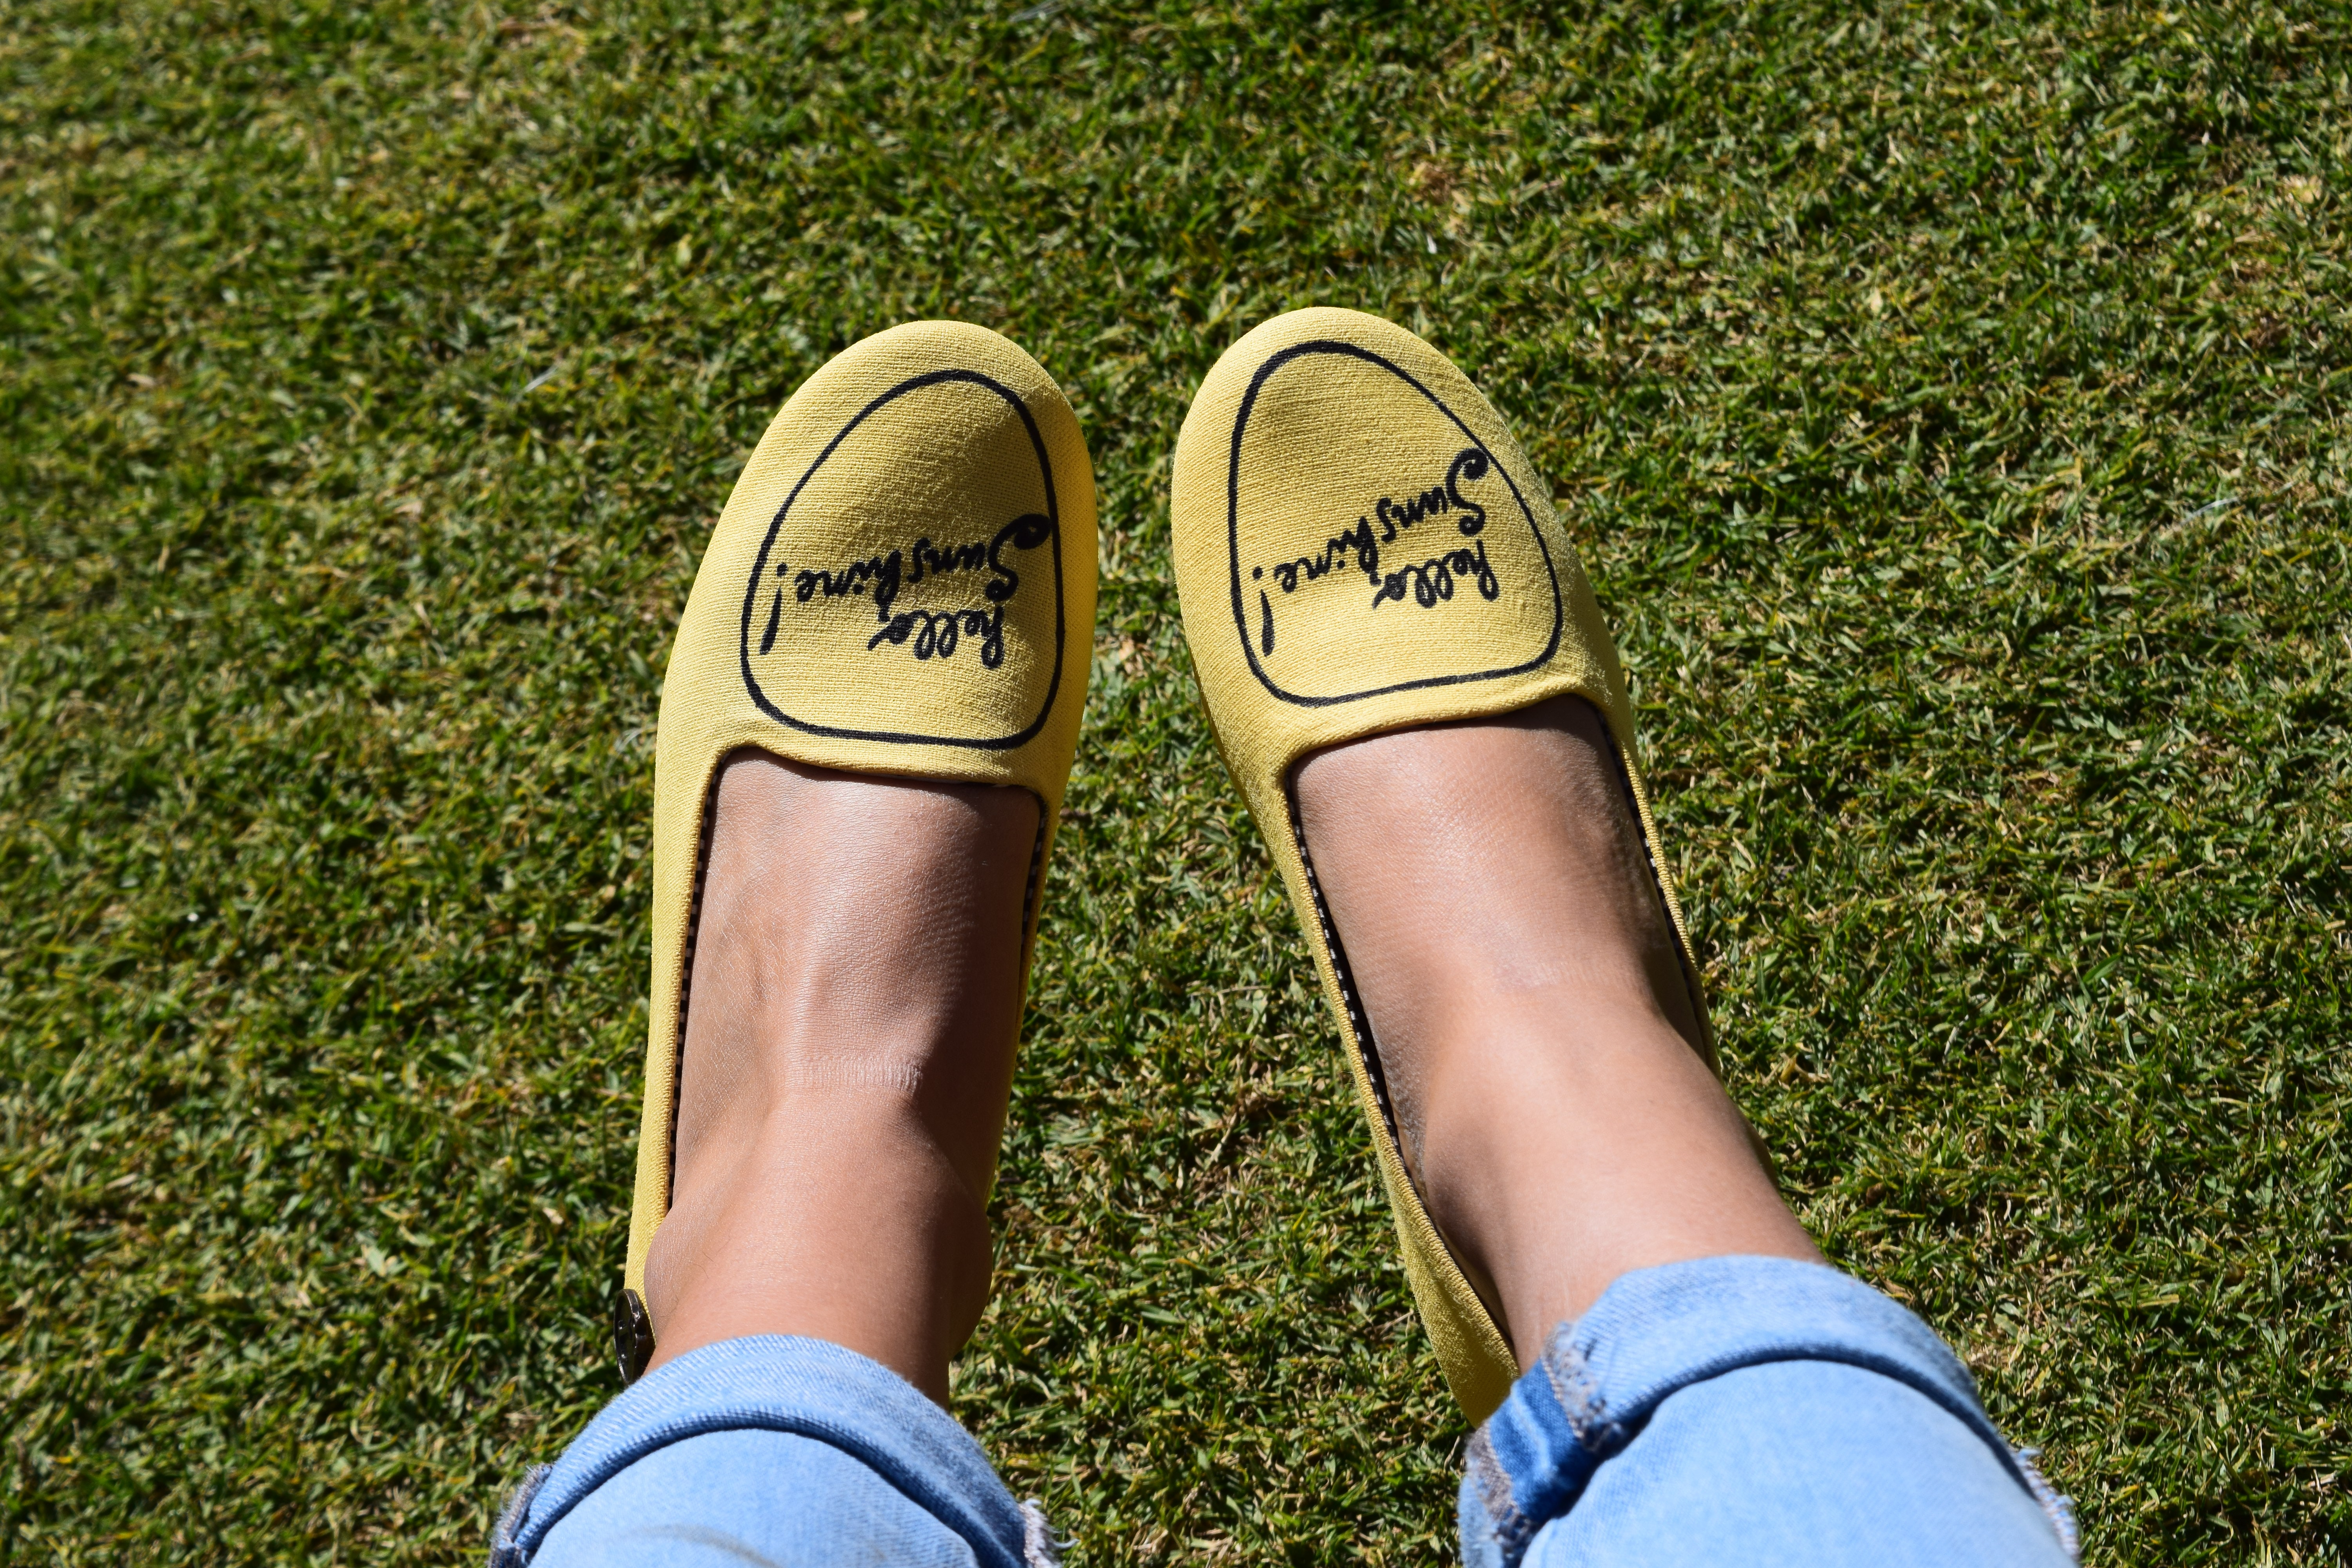 person wearing yellow slip-on shoes